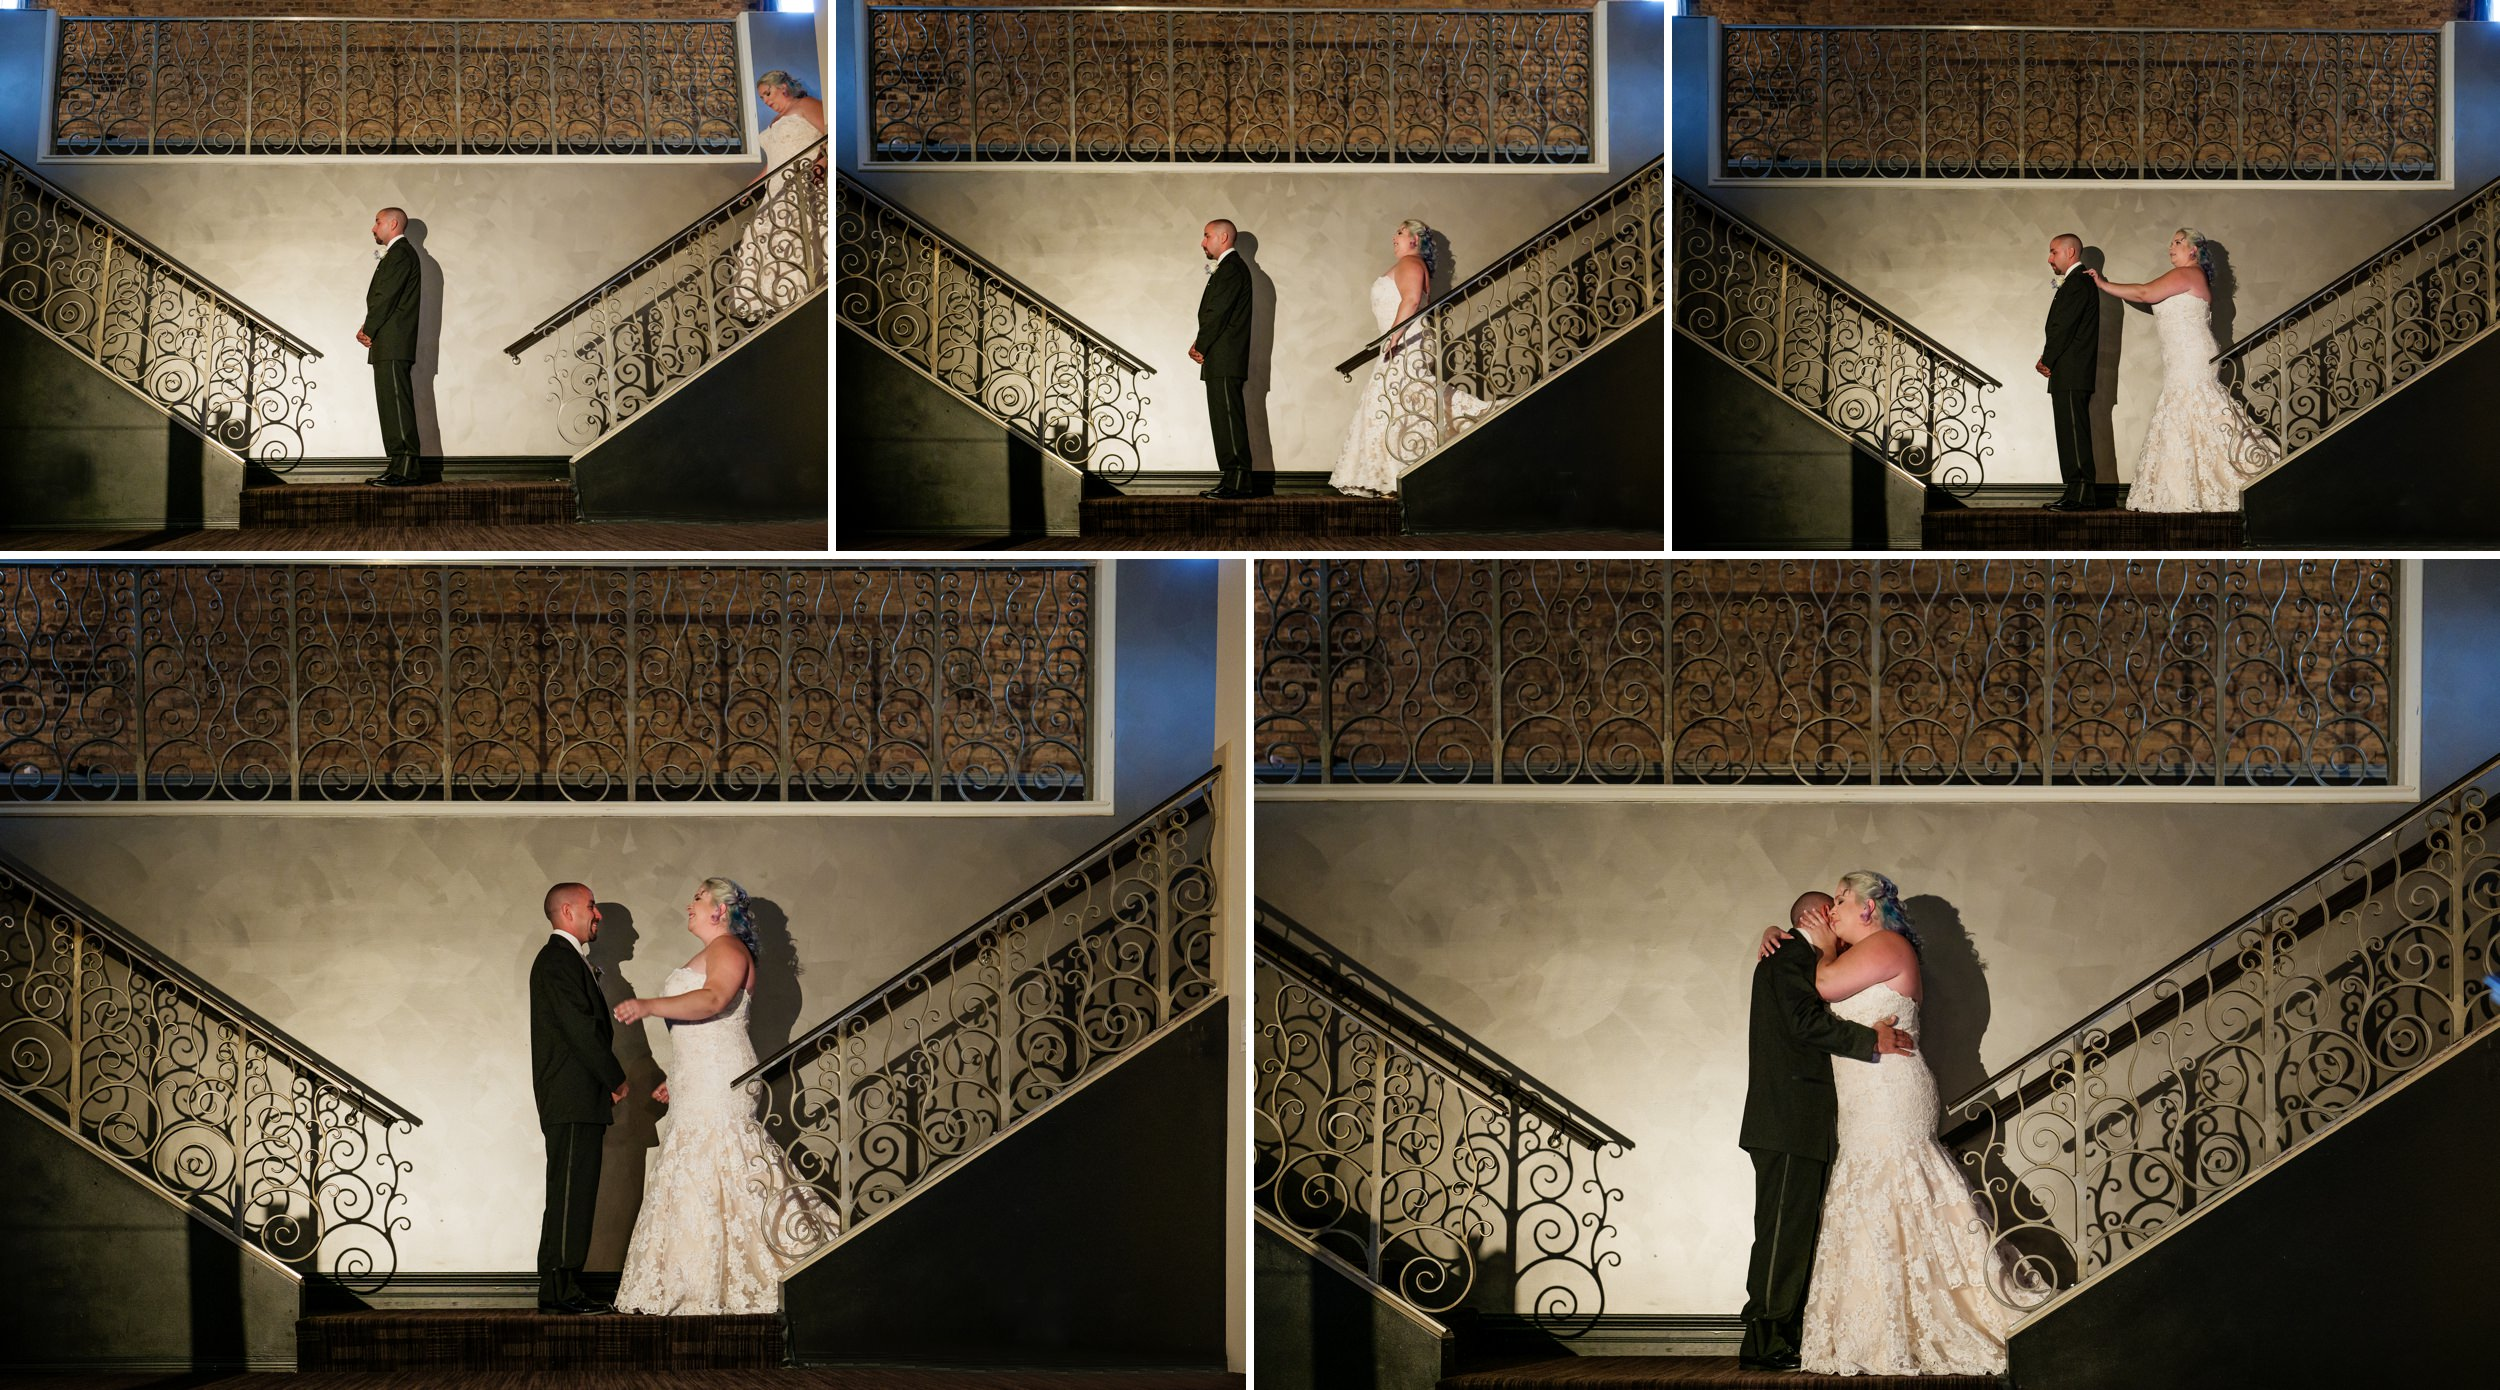 First look for the bride and groom at the stairs of the balcony at The Allure.